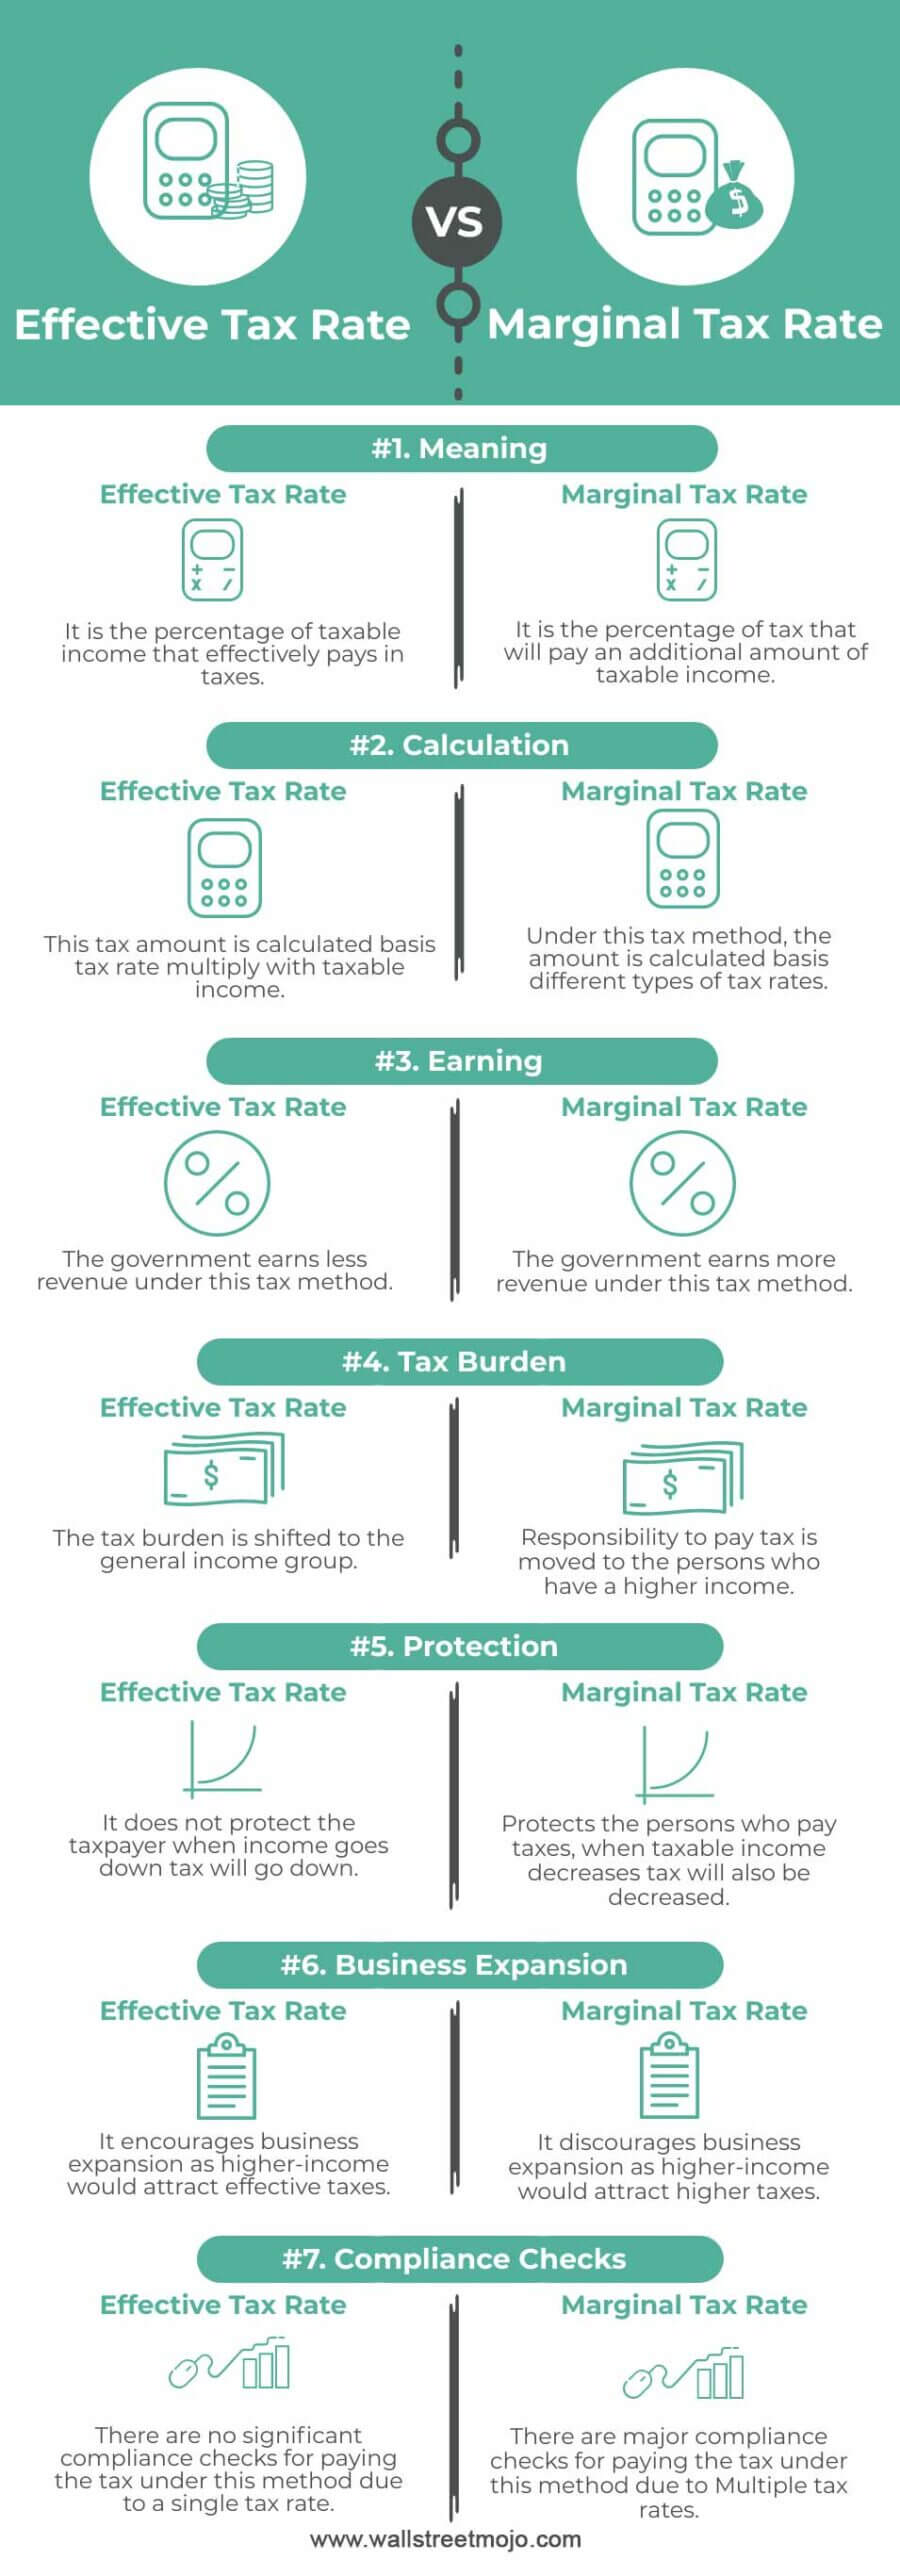 Effective-Tax-Rate-vs-Marginal-Tax-Rate-info